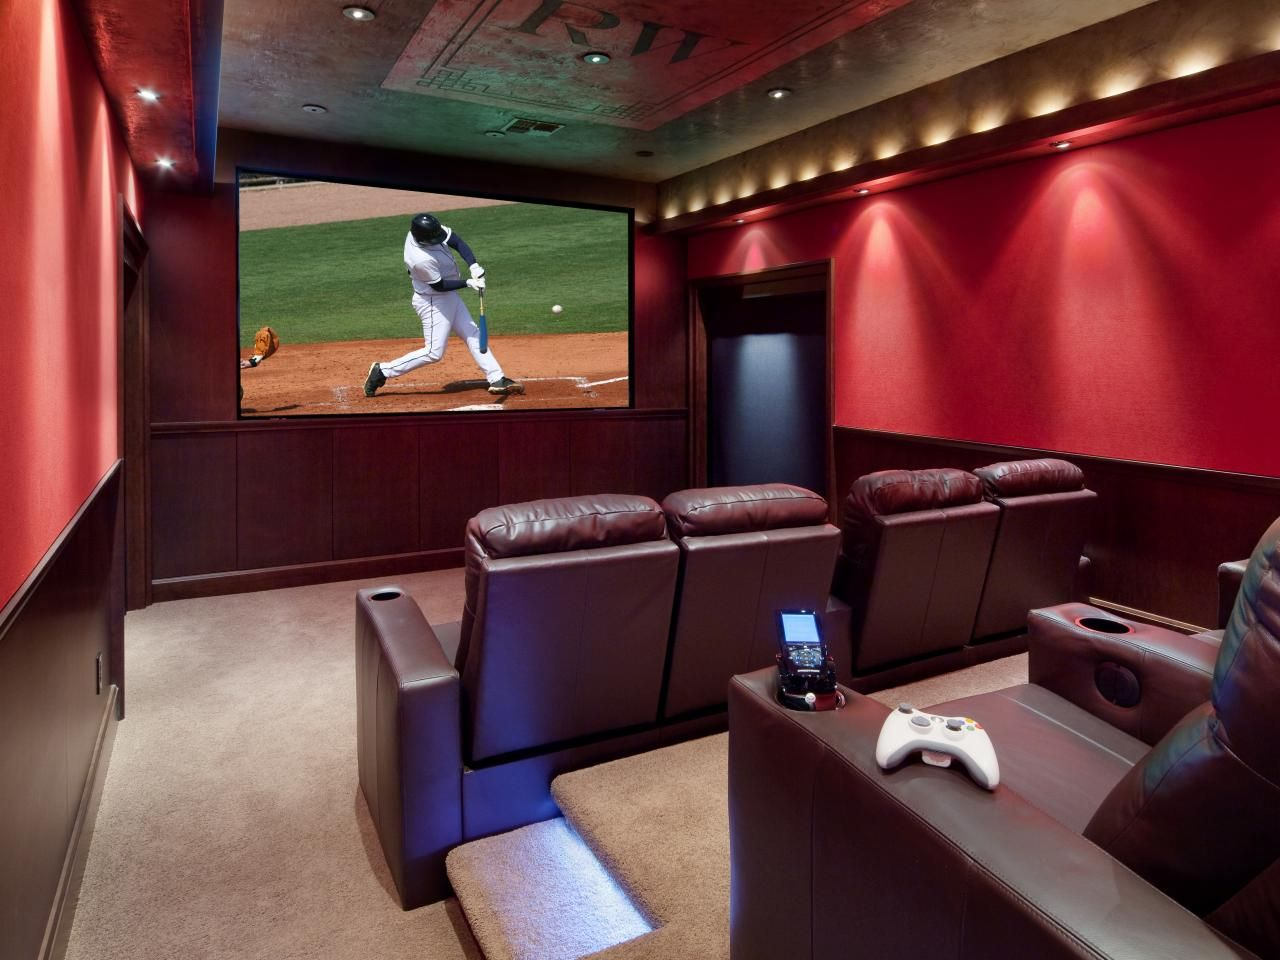 Designer Home Theaters \u0026 Media Rooms: Inspirational Pictures ...